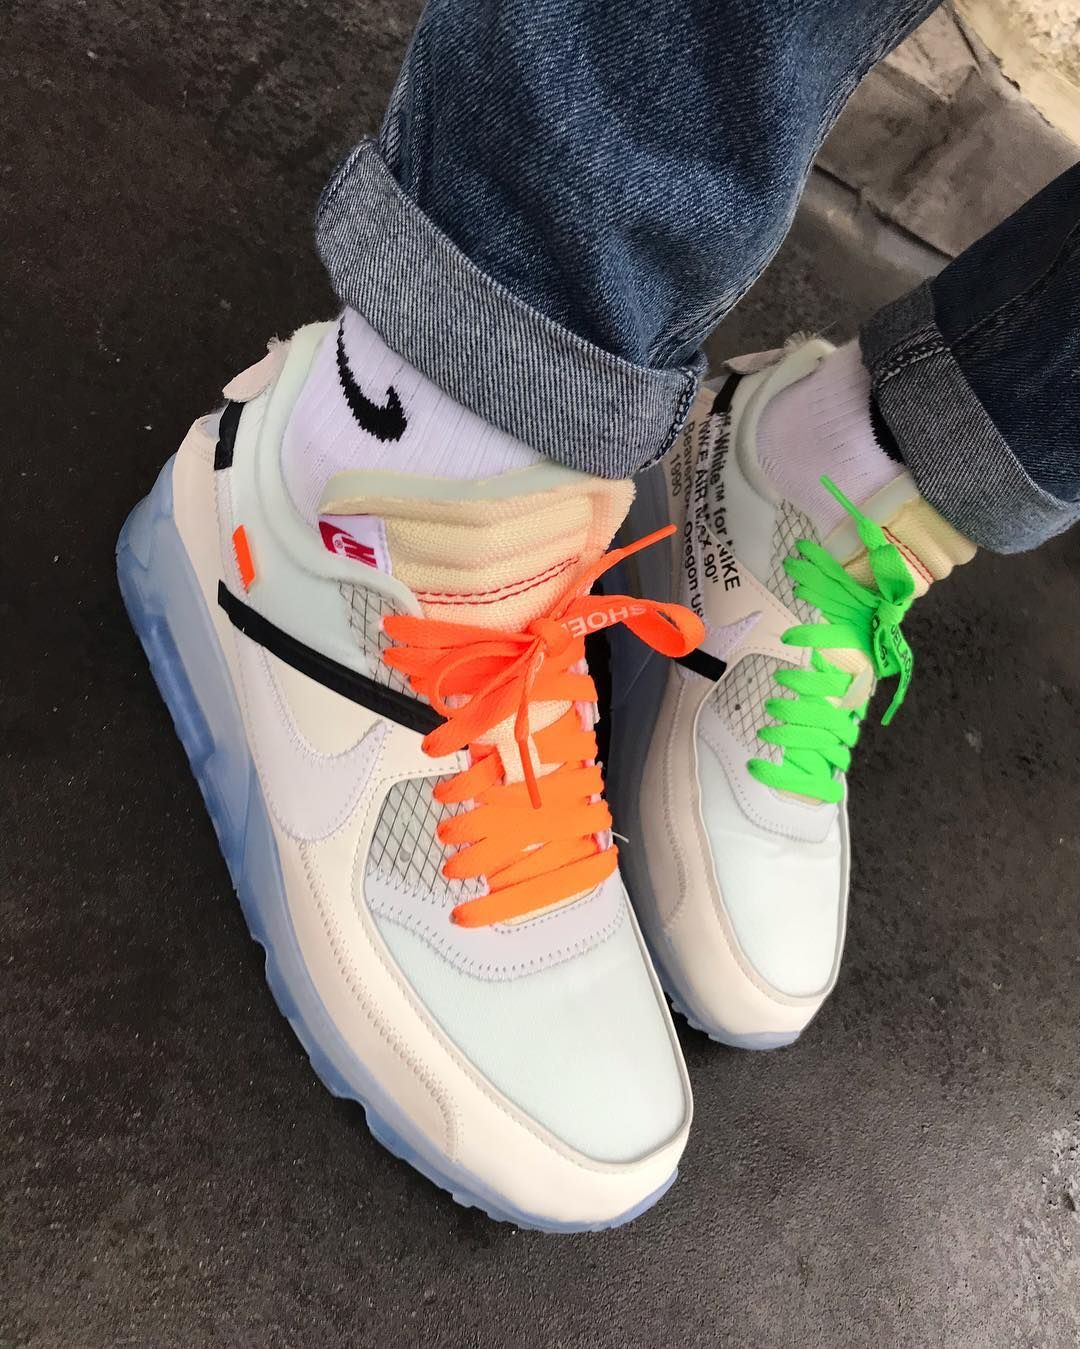 7d4d8e509 Watch the Best YouTube Videos Online - Happy Air Max Day #airmaxday2019  #offwhiteairmax90 #